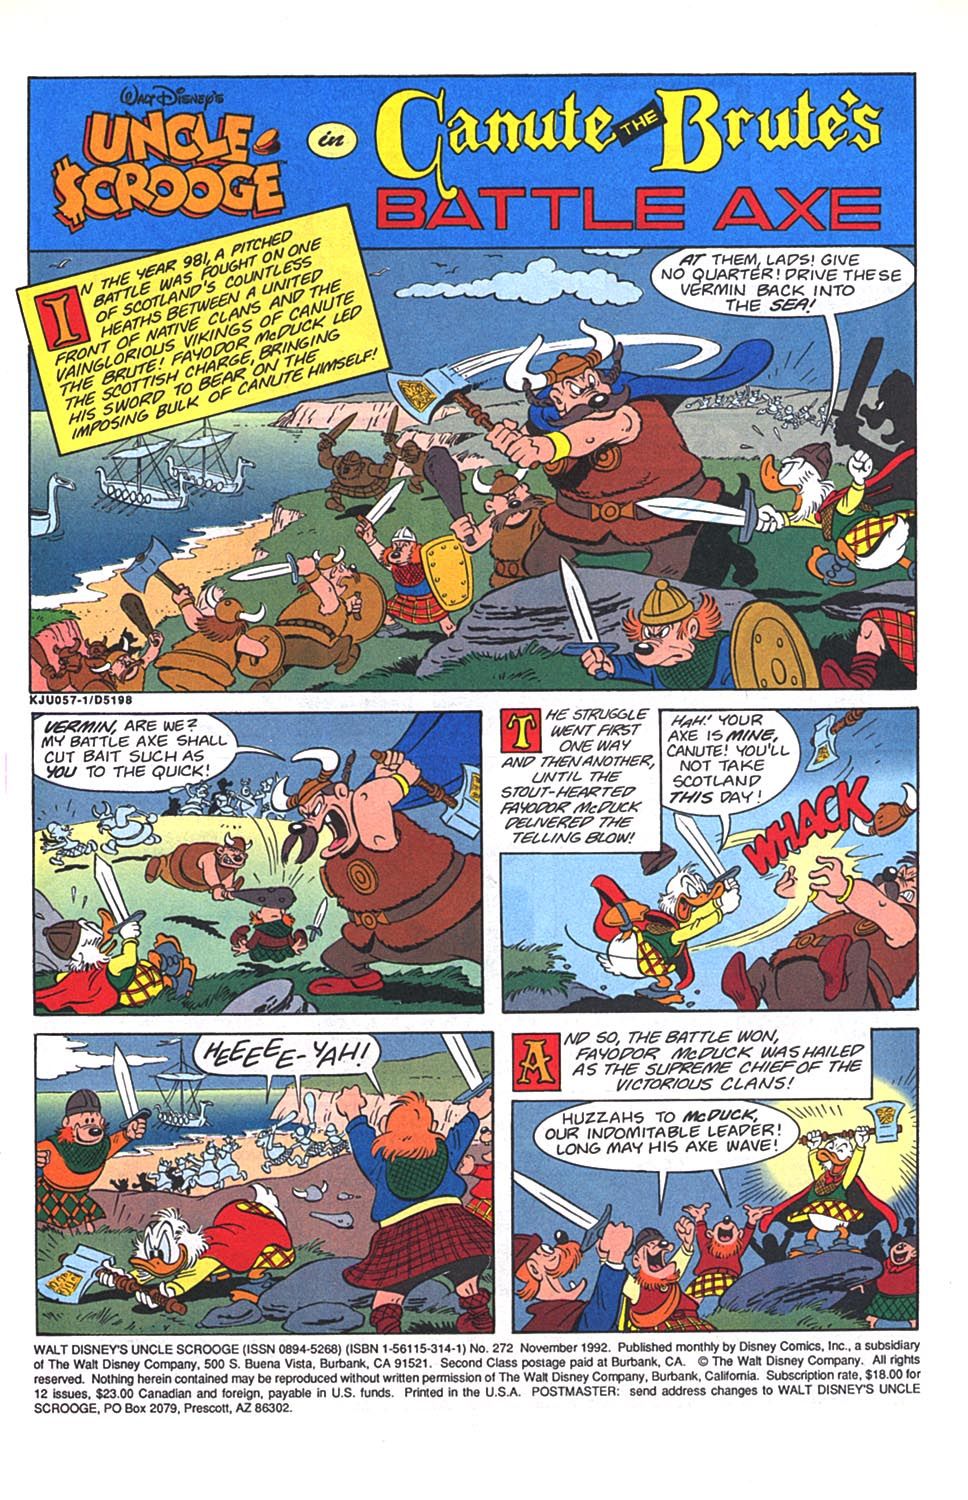 com/uncle-scrooge-1953/is #133 - English 2